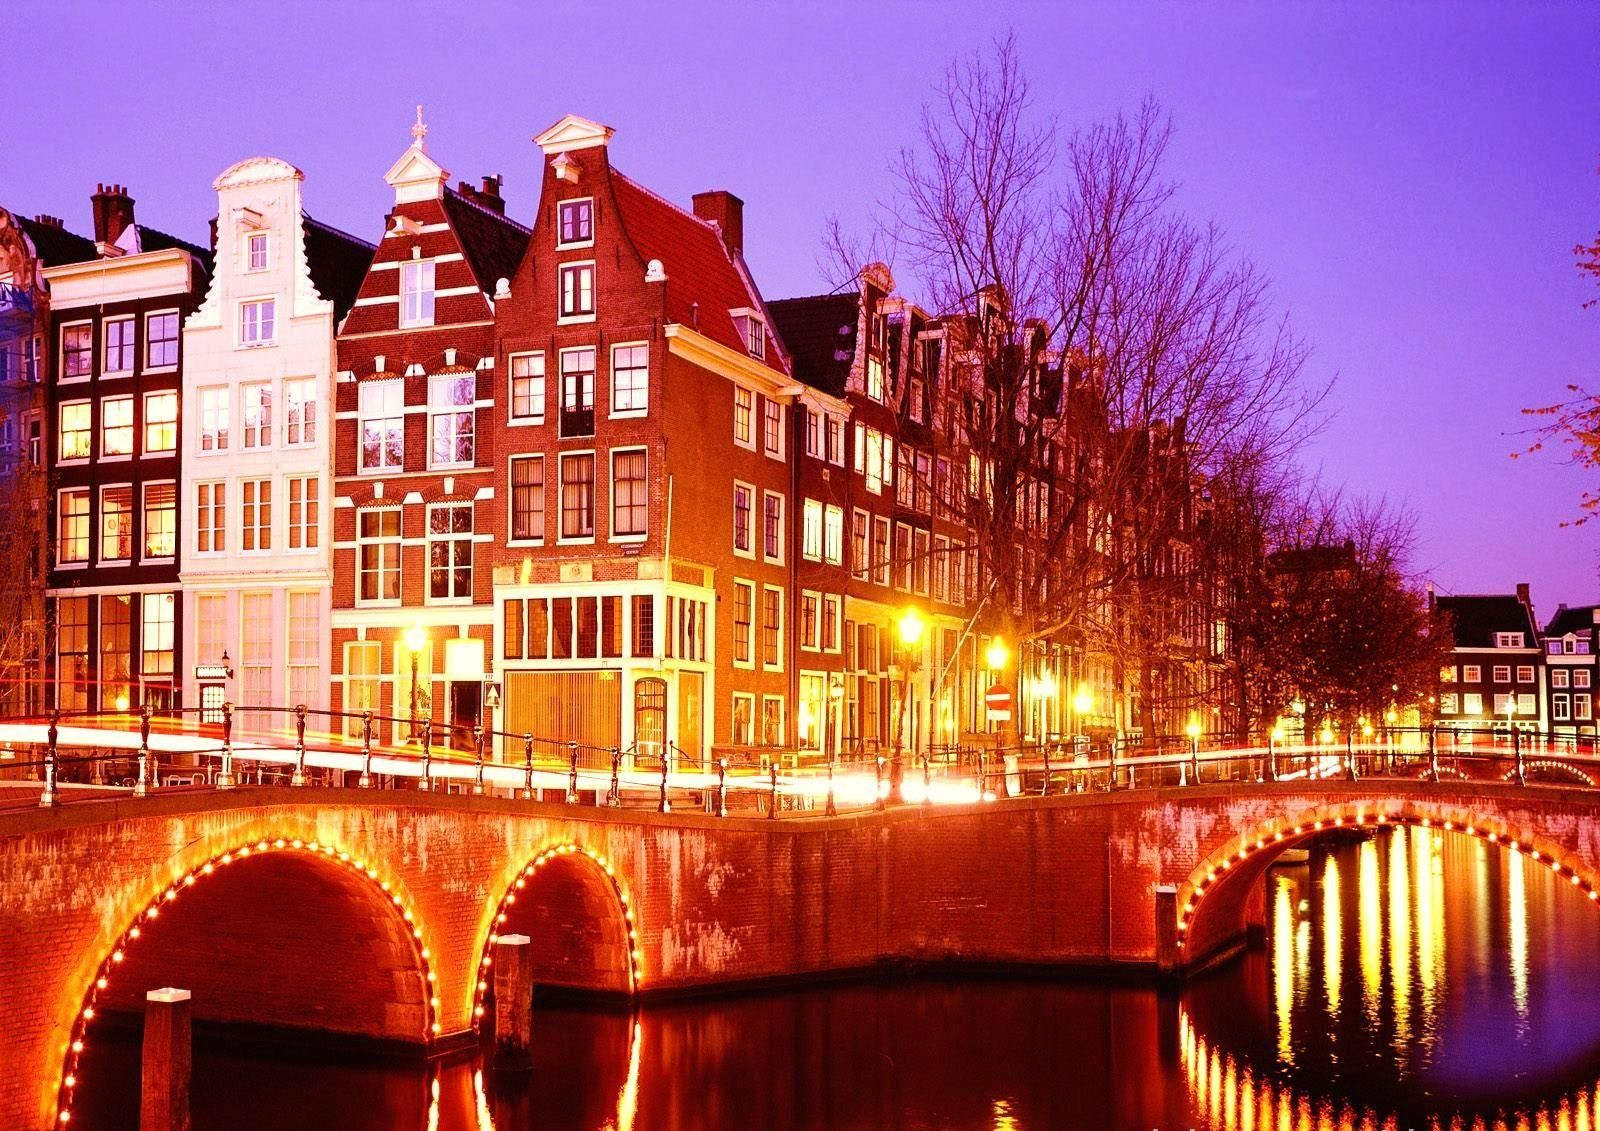 The canals - Amsterdam